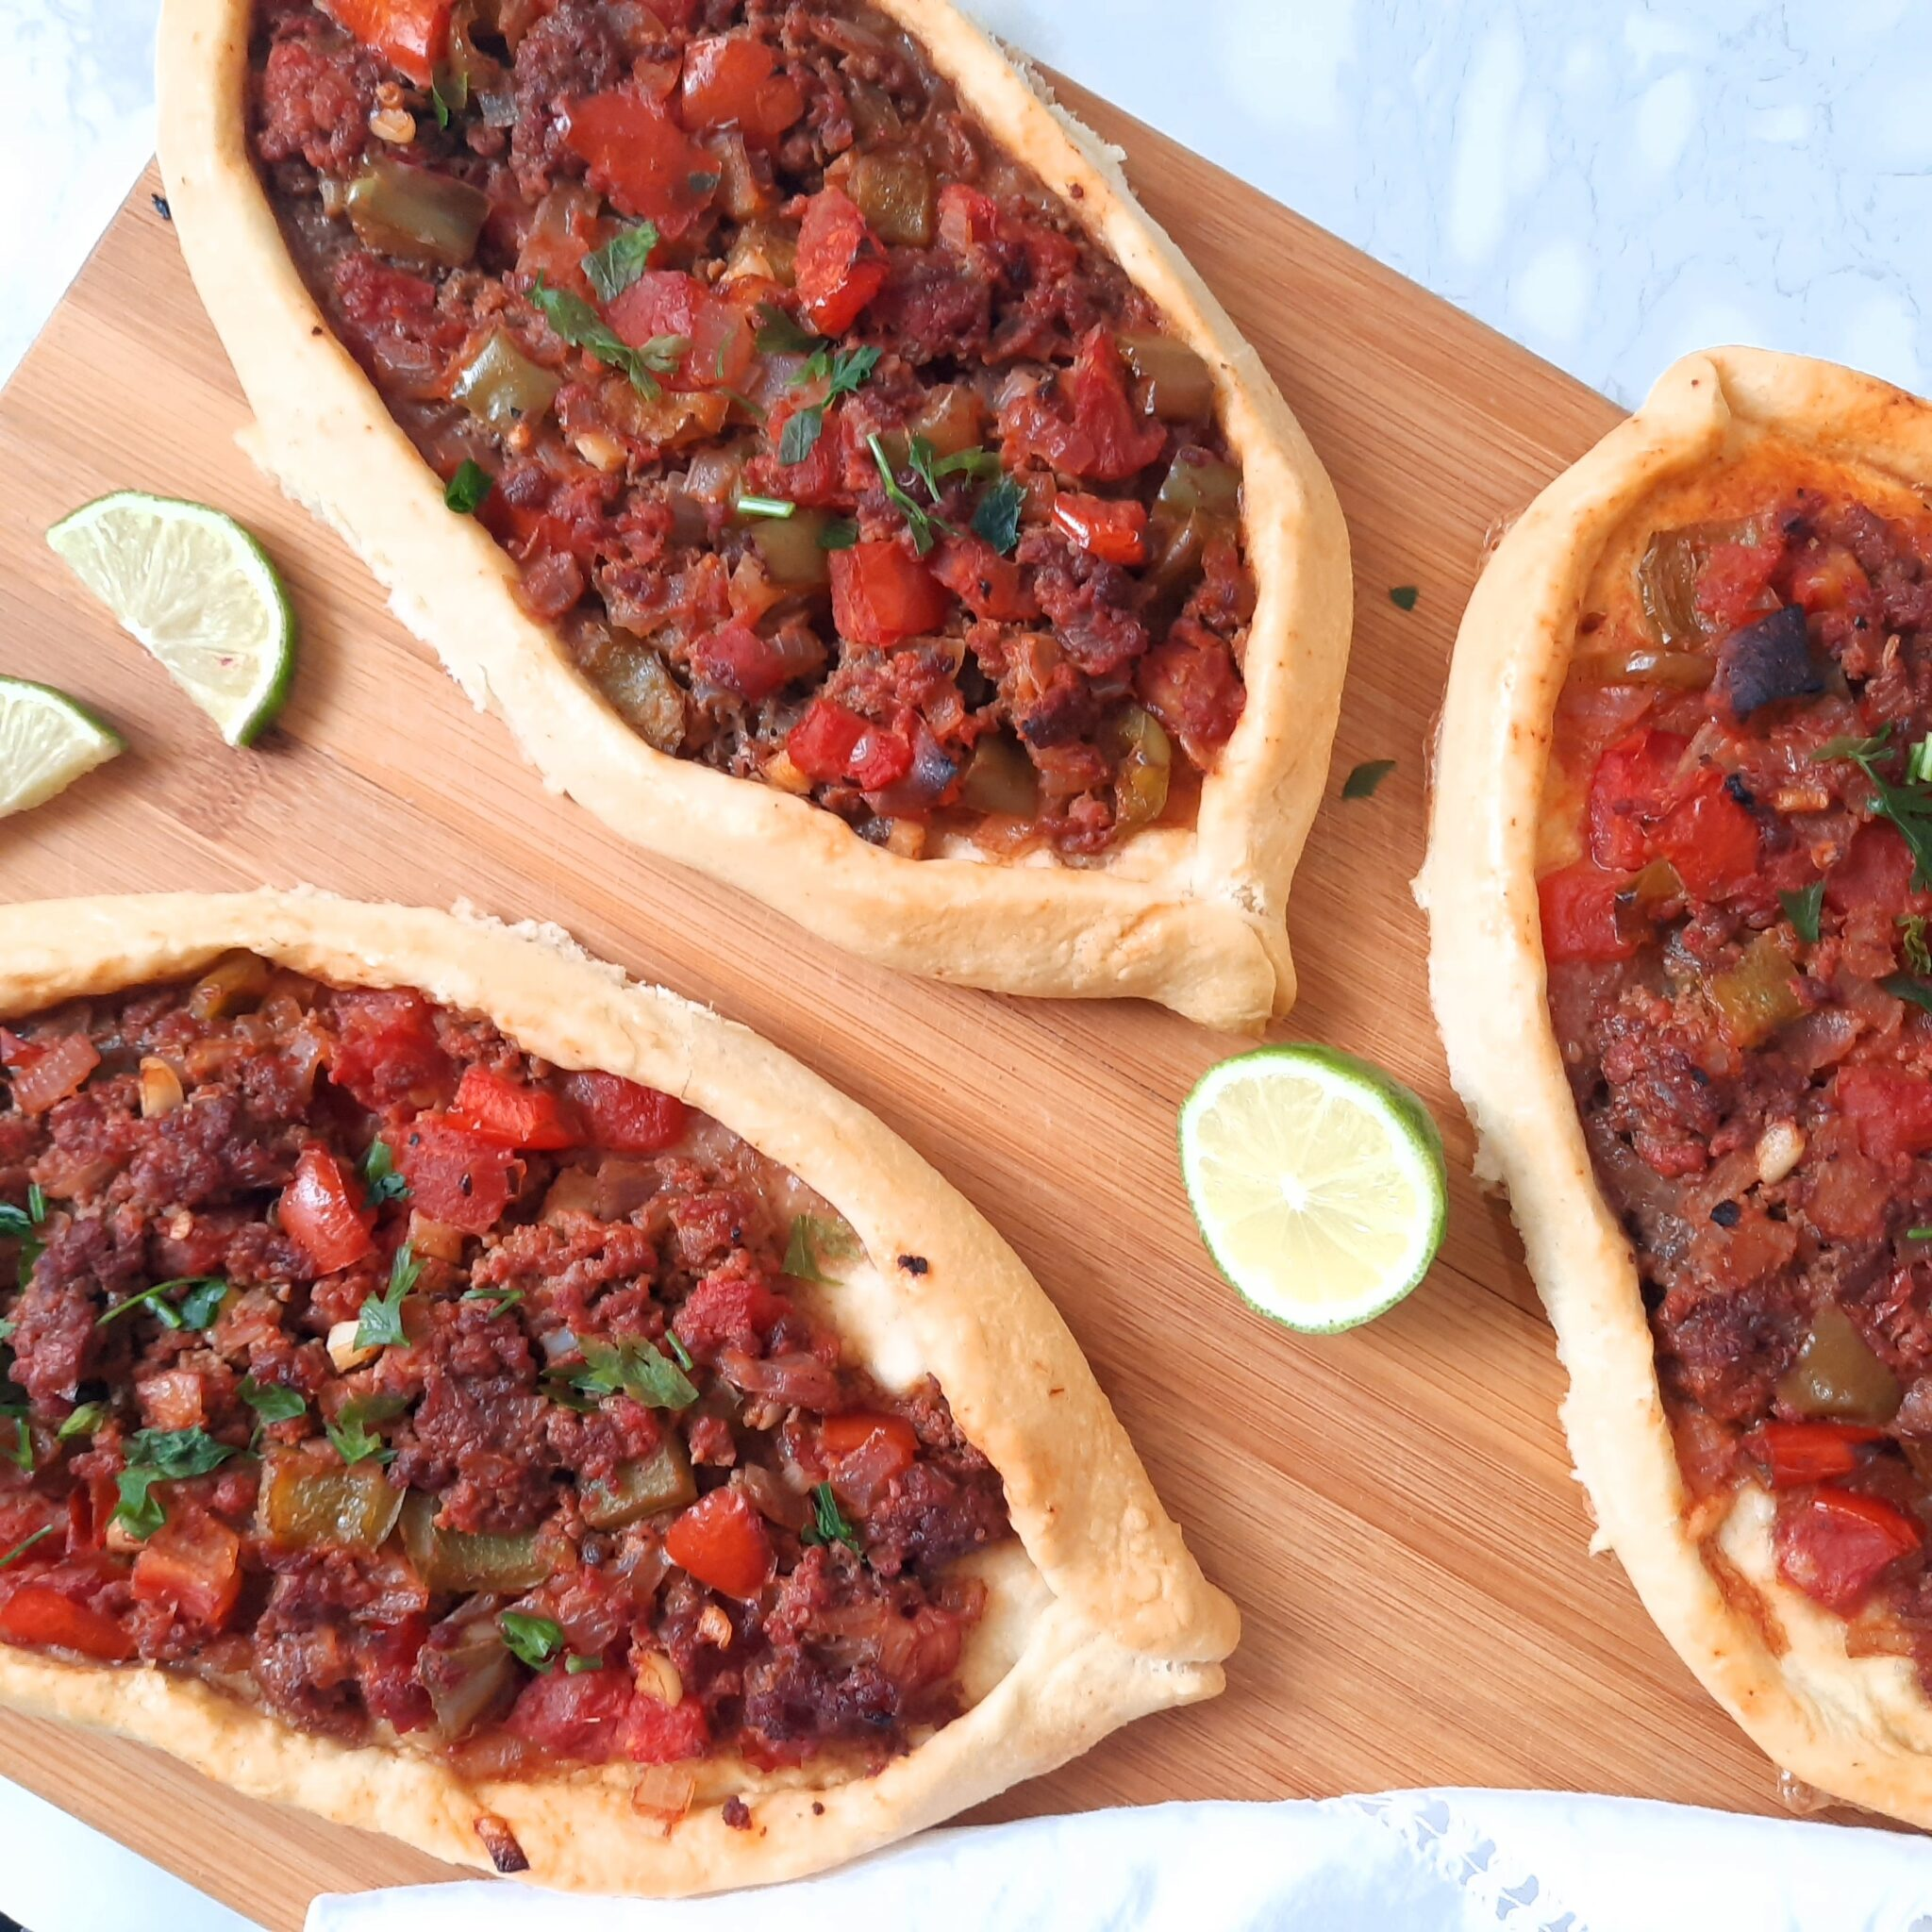 Kiymali Pide: Delicious Turkish Flatbread filled with Meat